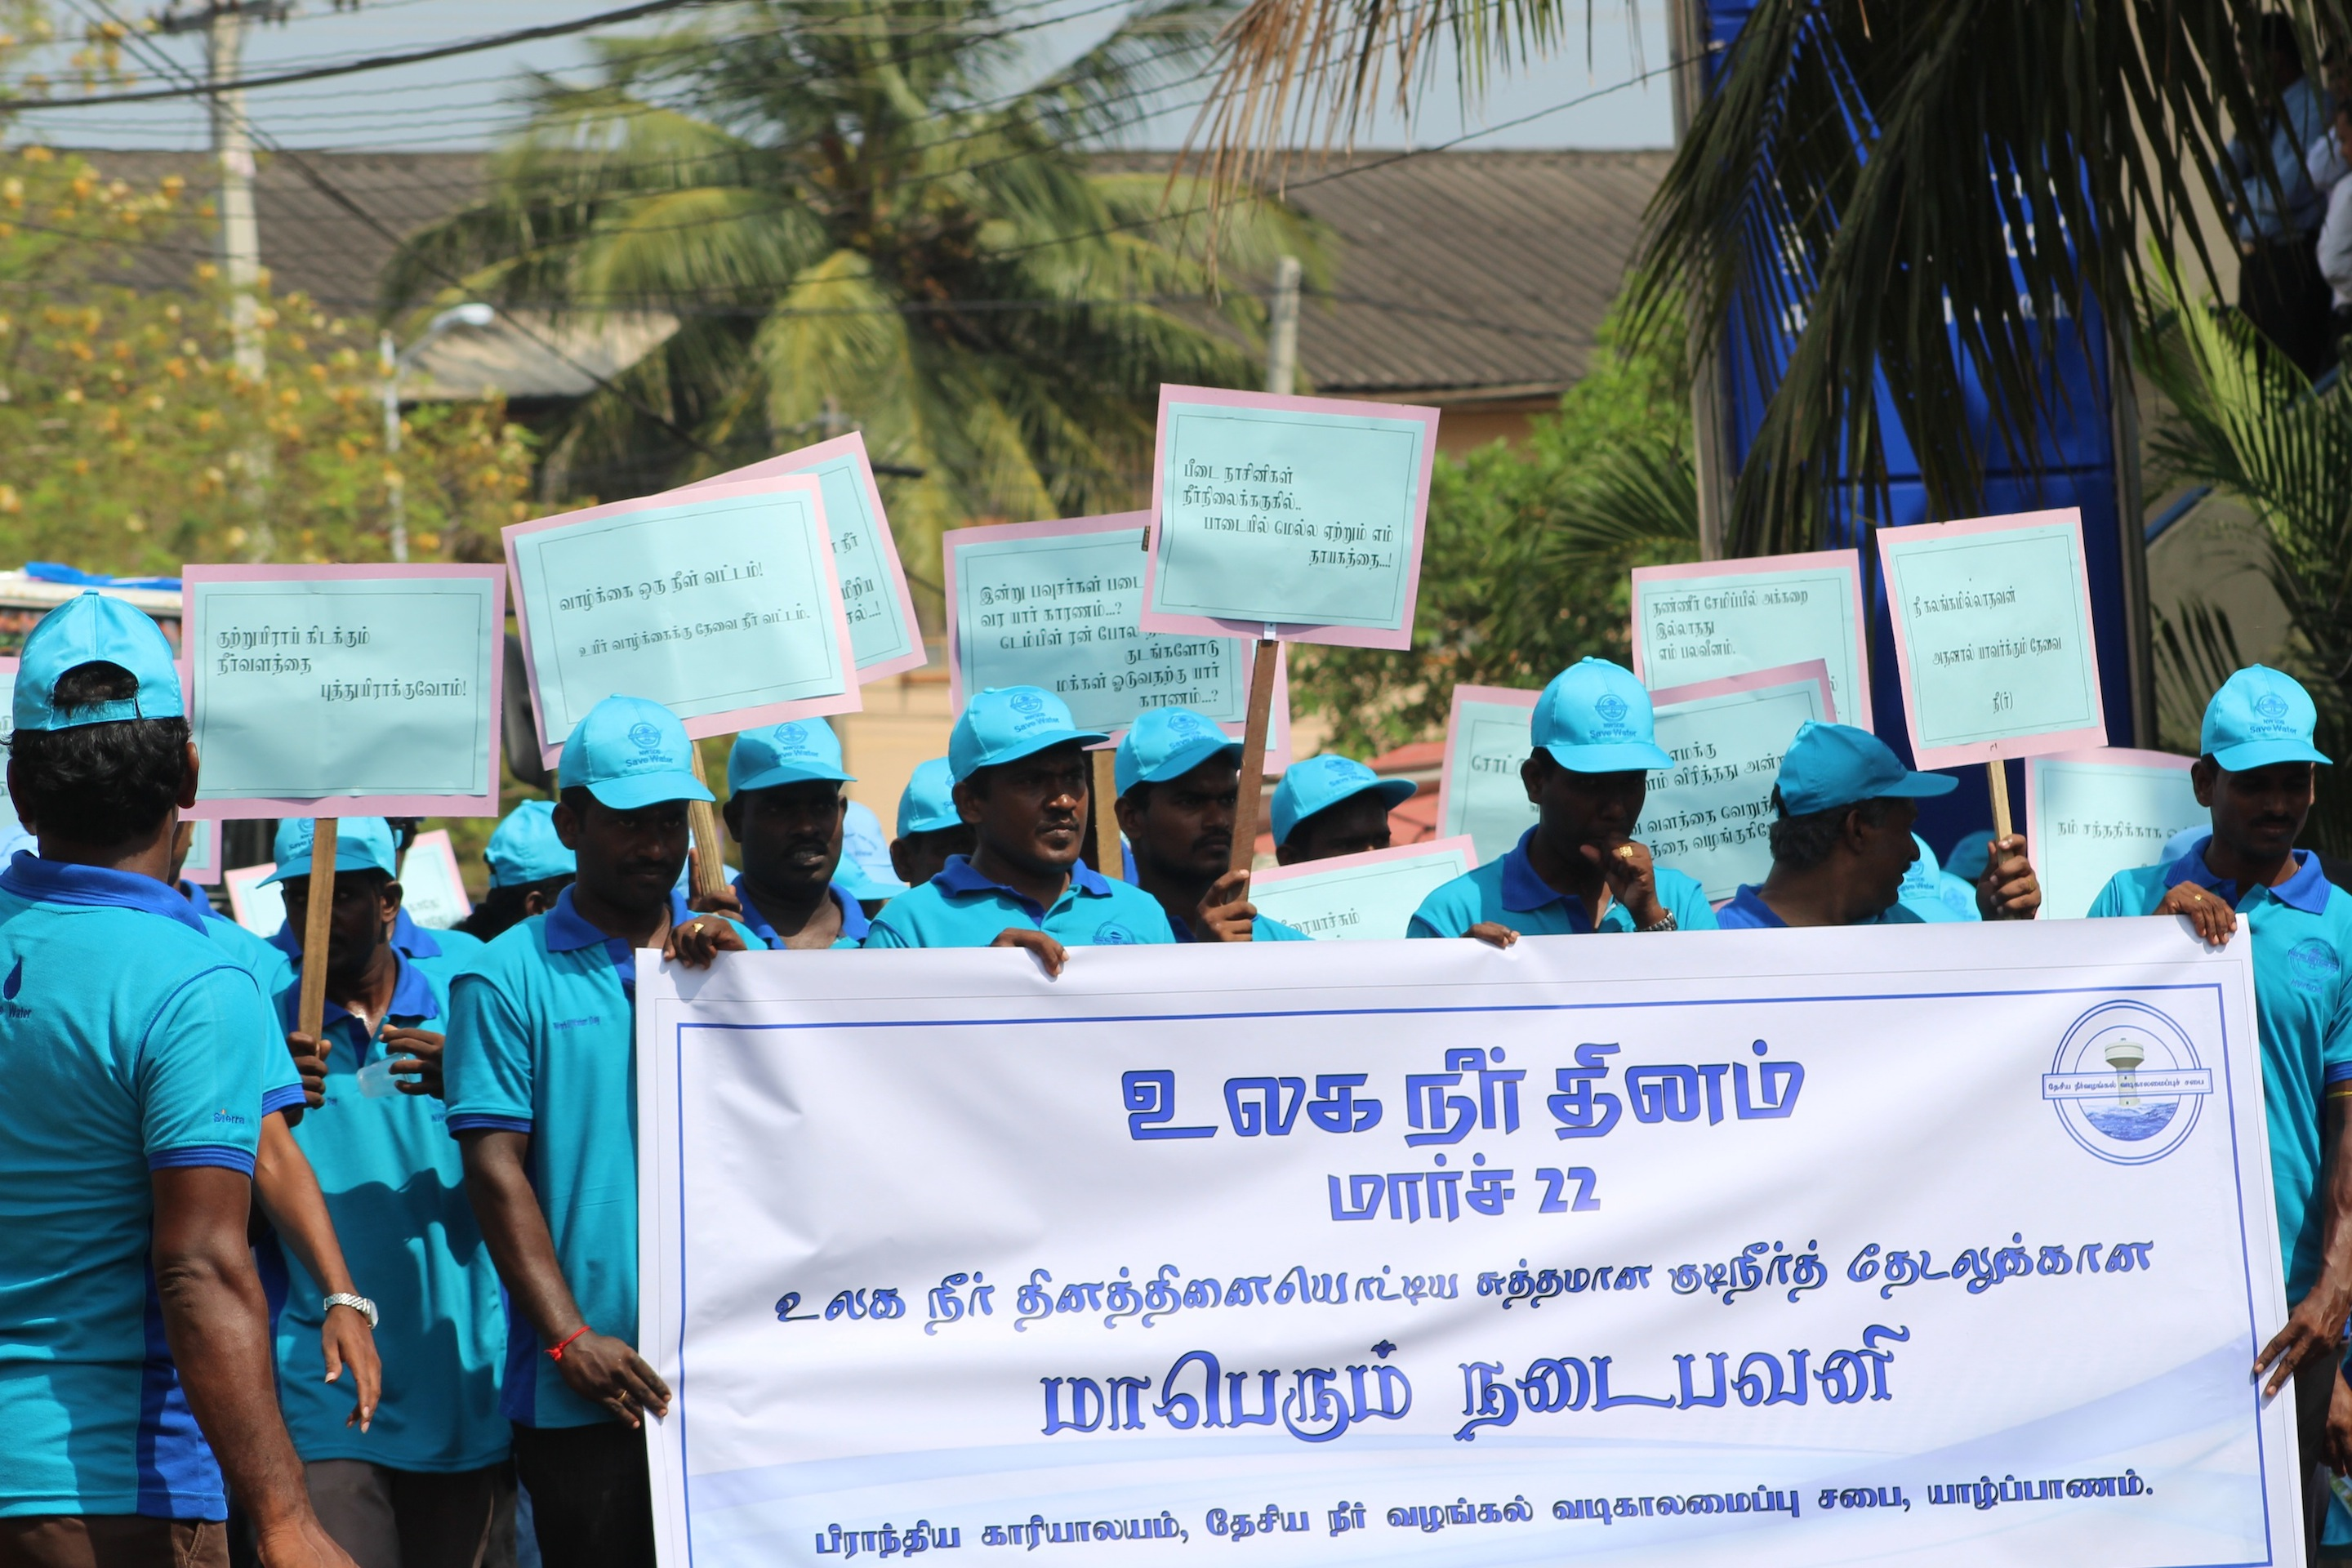 Rally marks World Water Day in Jaffna | Tamil Guardian